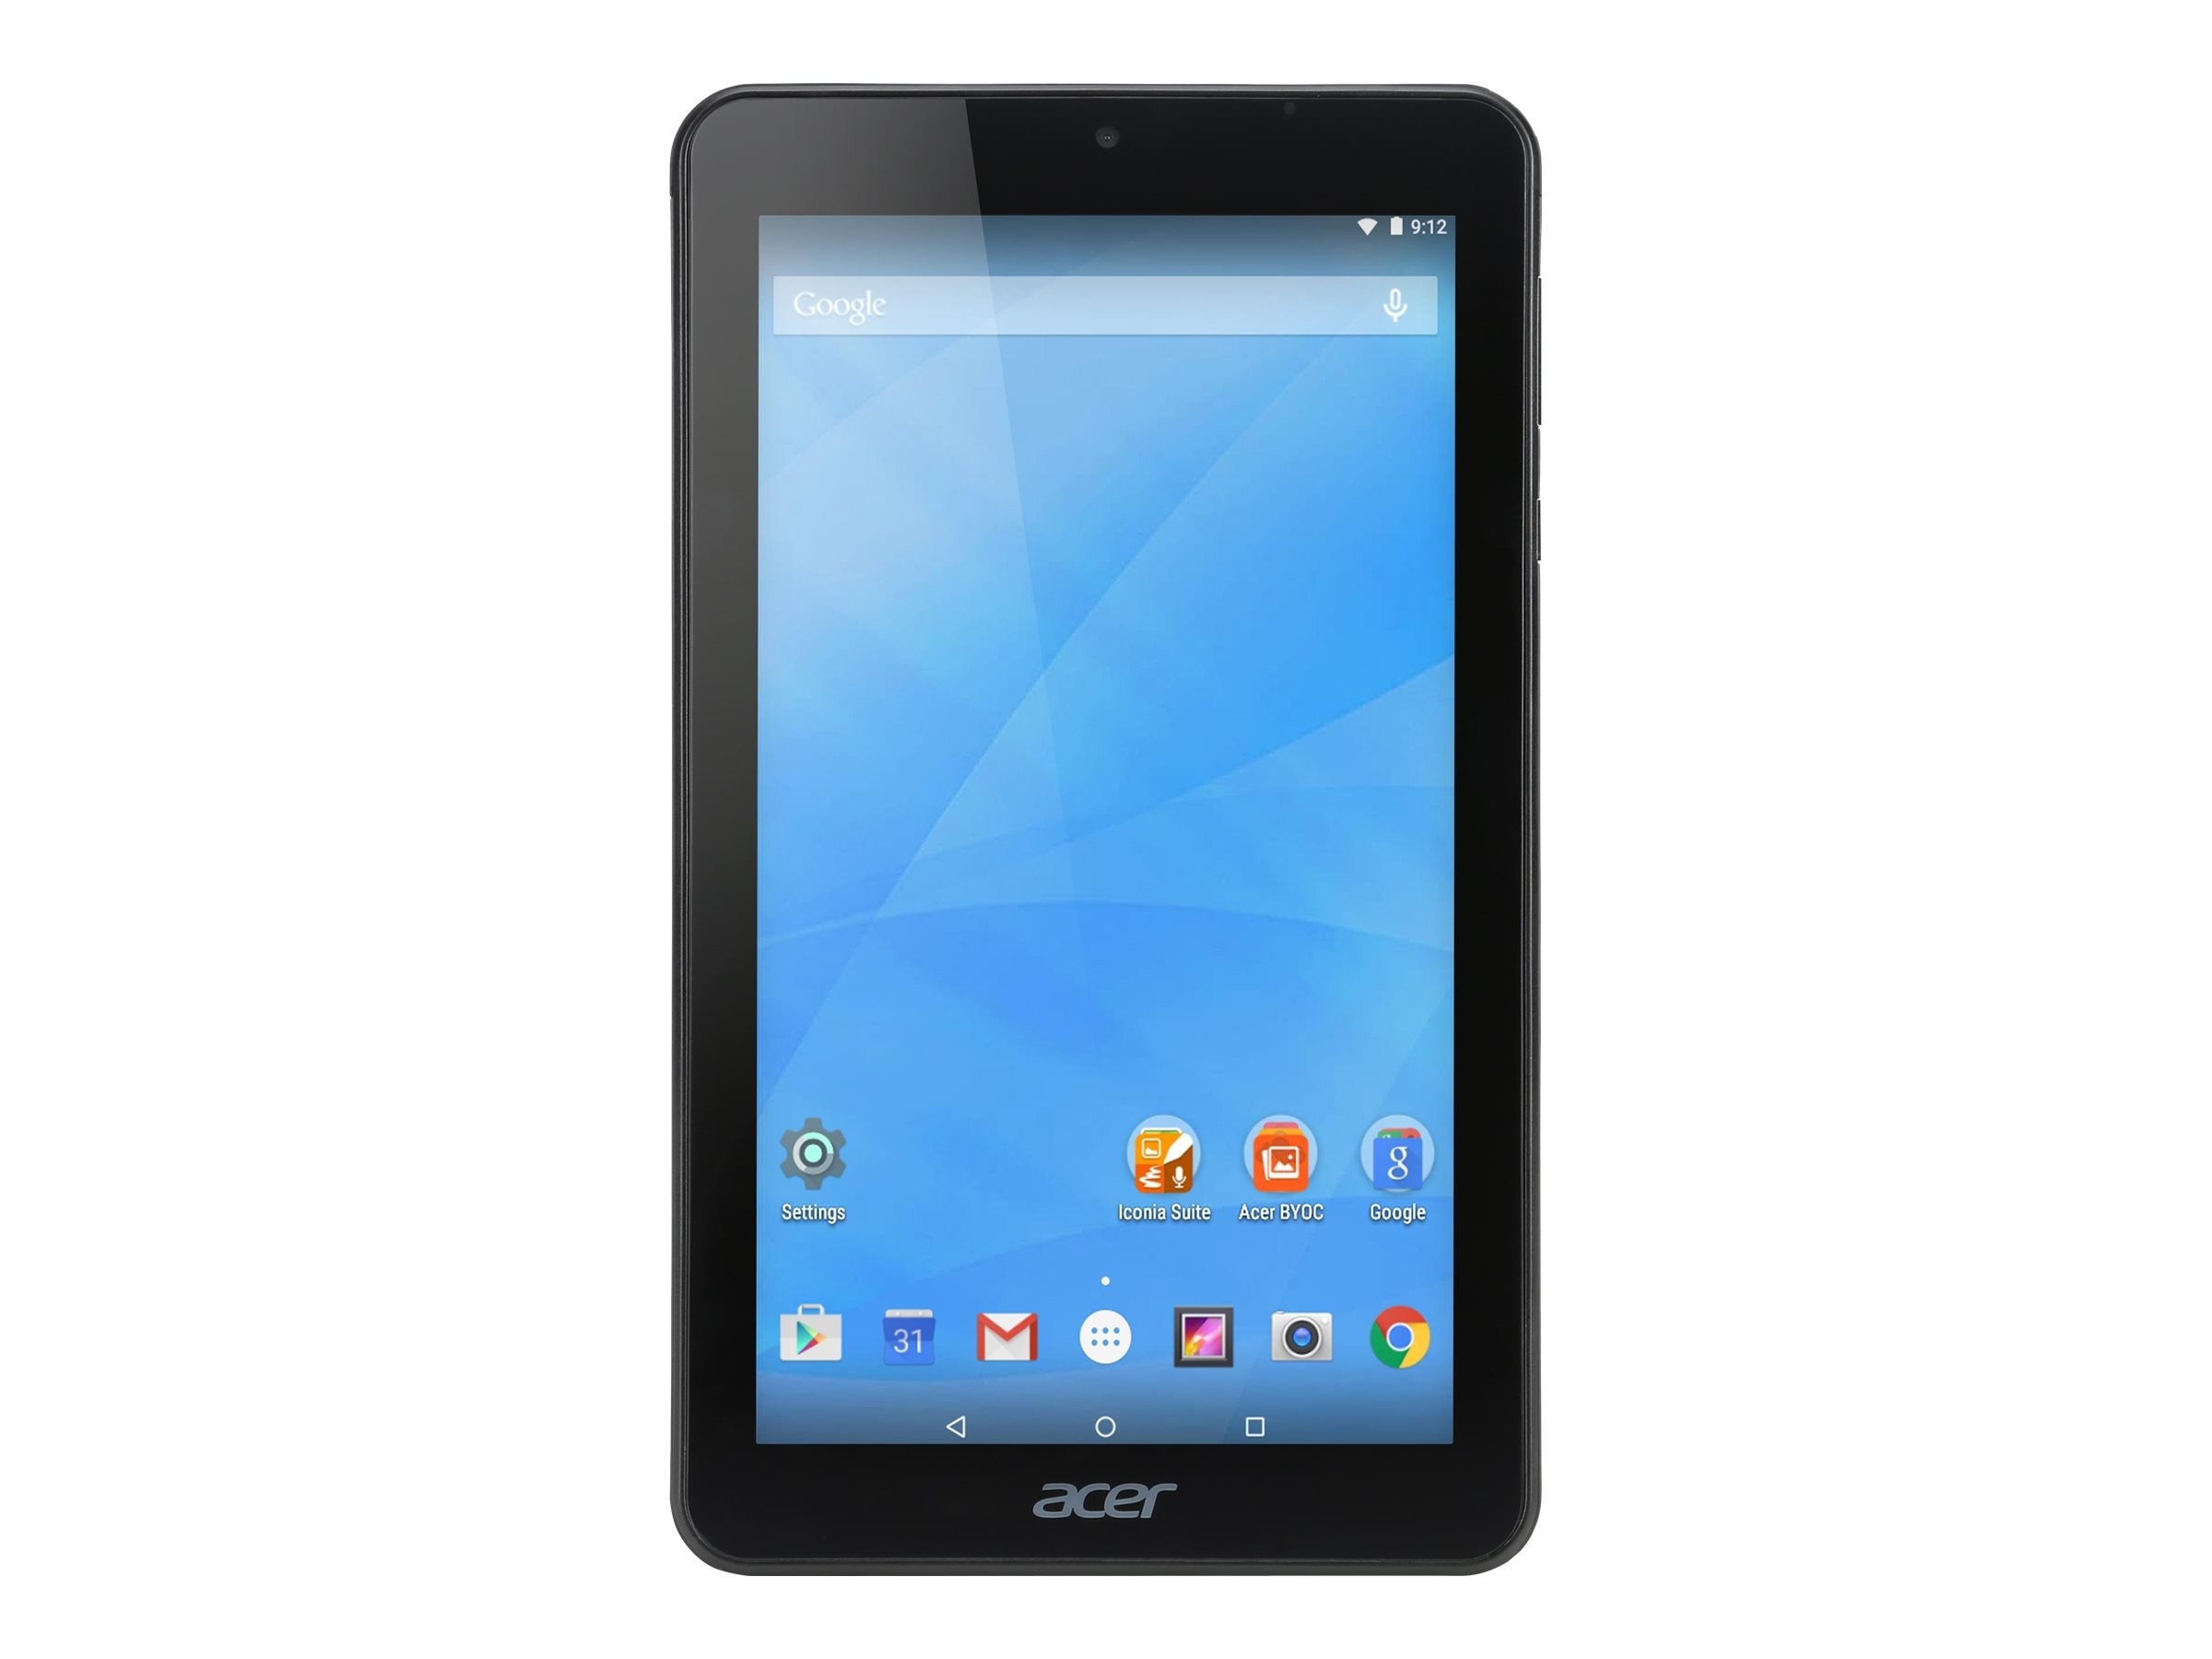 Acer Iconia B1-770-K3RC MT8127 1.3GHz 1GB 16GB bgn BT 2xWC 1C 7 WSVGA MT Android 5.0 Black